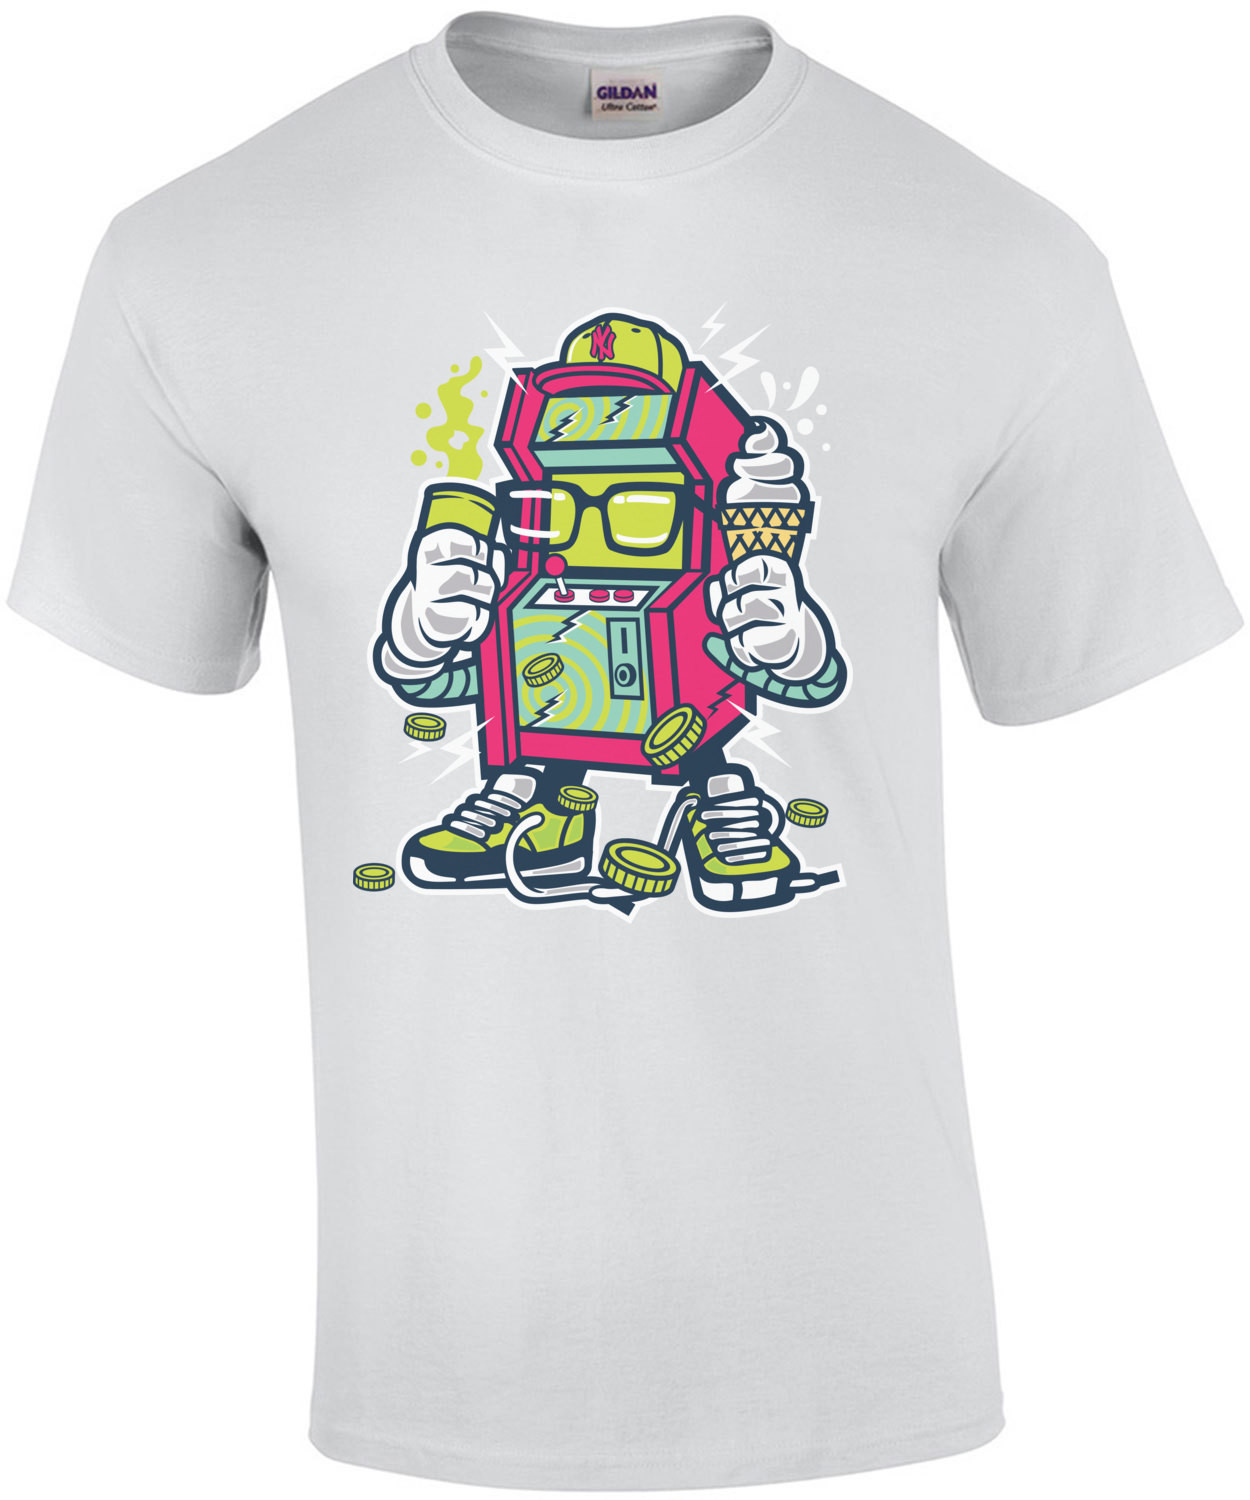 Retro Arcade Machine T-Shirt